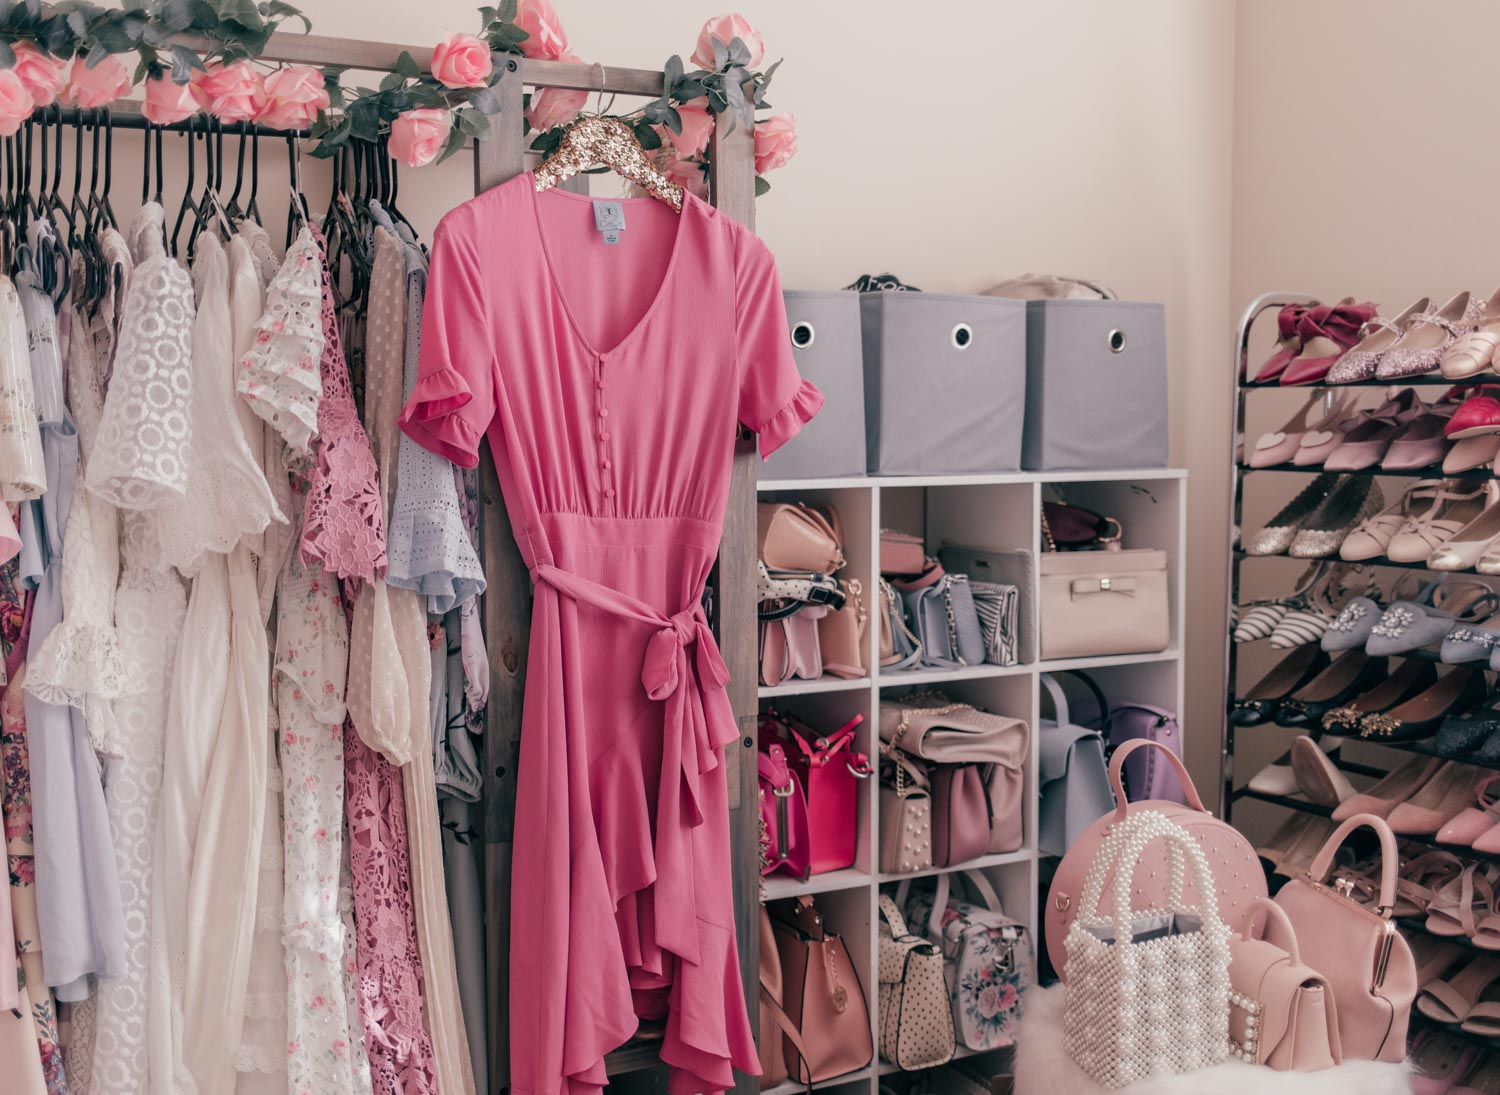 Elizabeth Hugen of Lizzie in lace shares her feminine and pastel closet tour